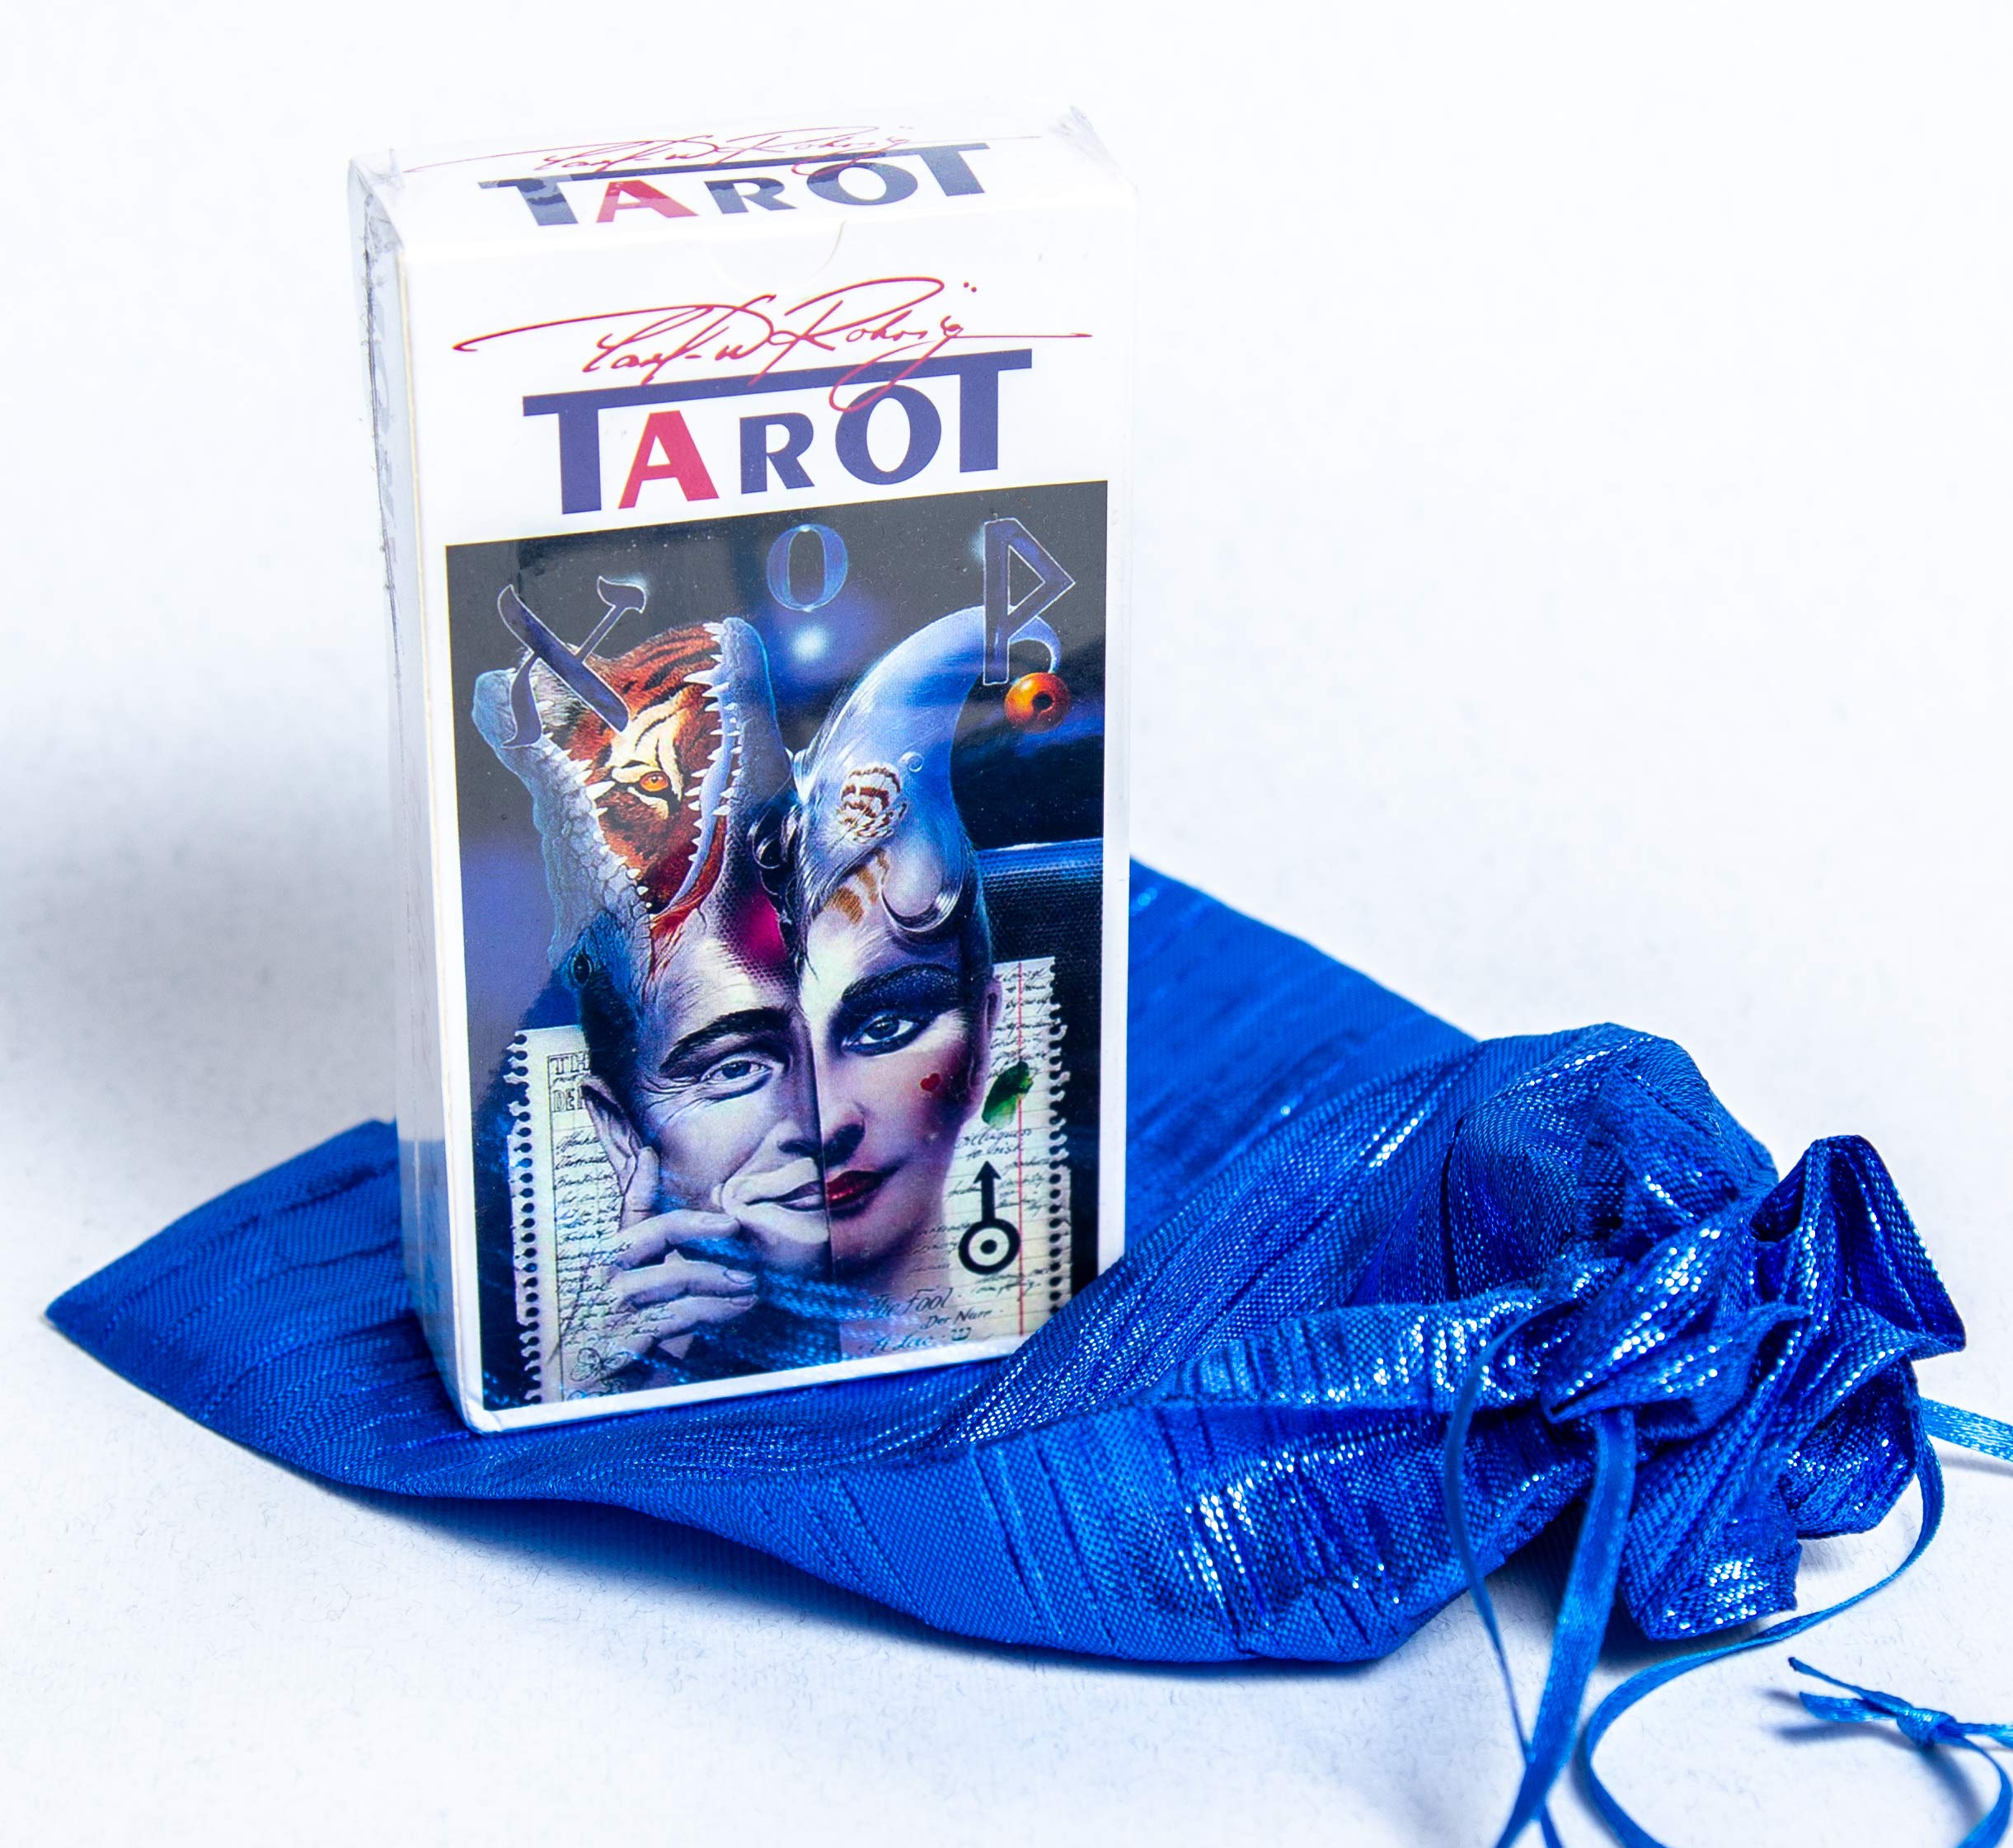 New 78 The Rohrig Tarot Tarot Cards Deck (Replica) Valentines Gift by Unknown (Image #1)